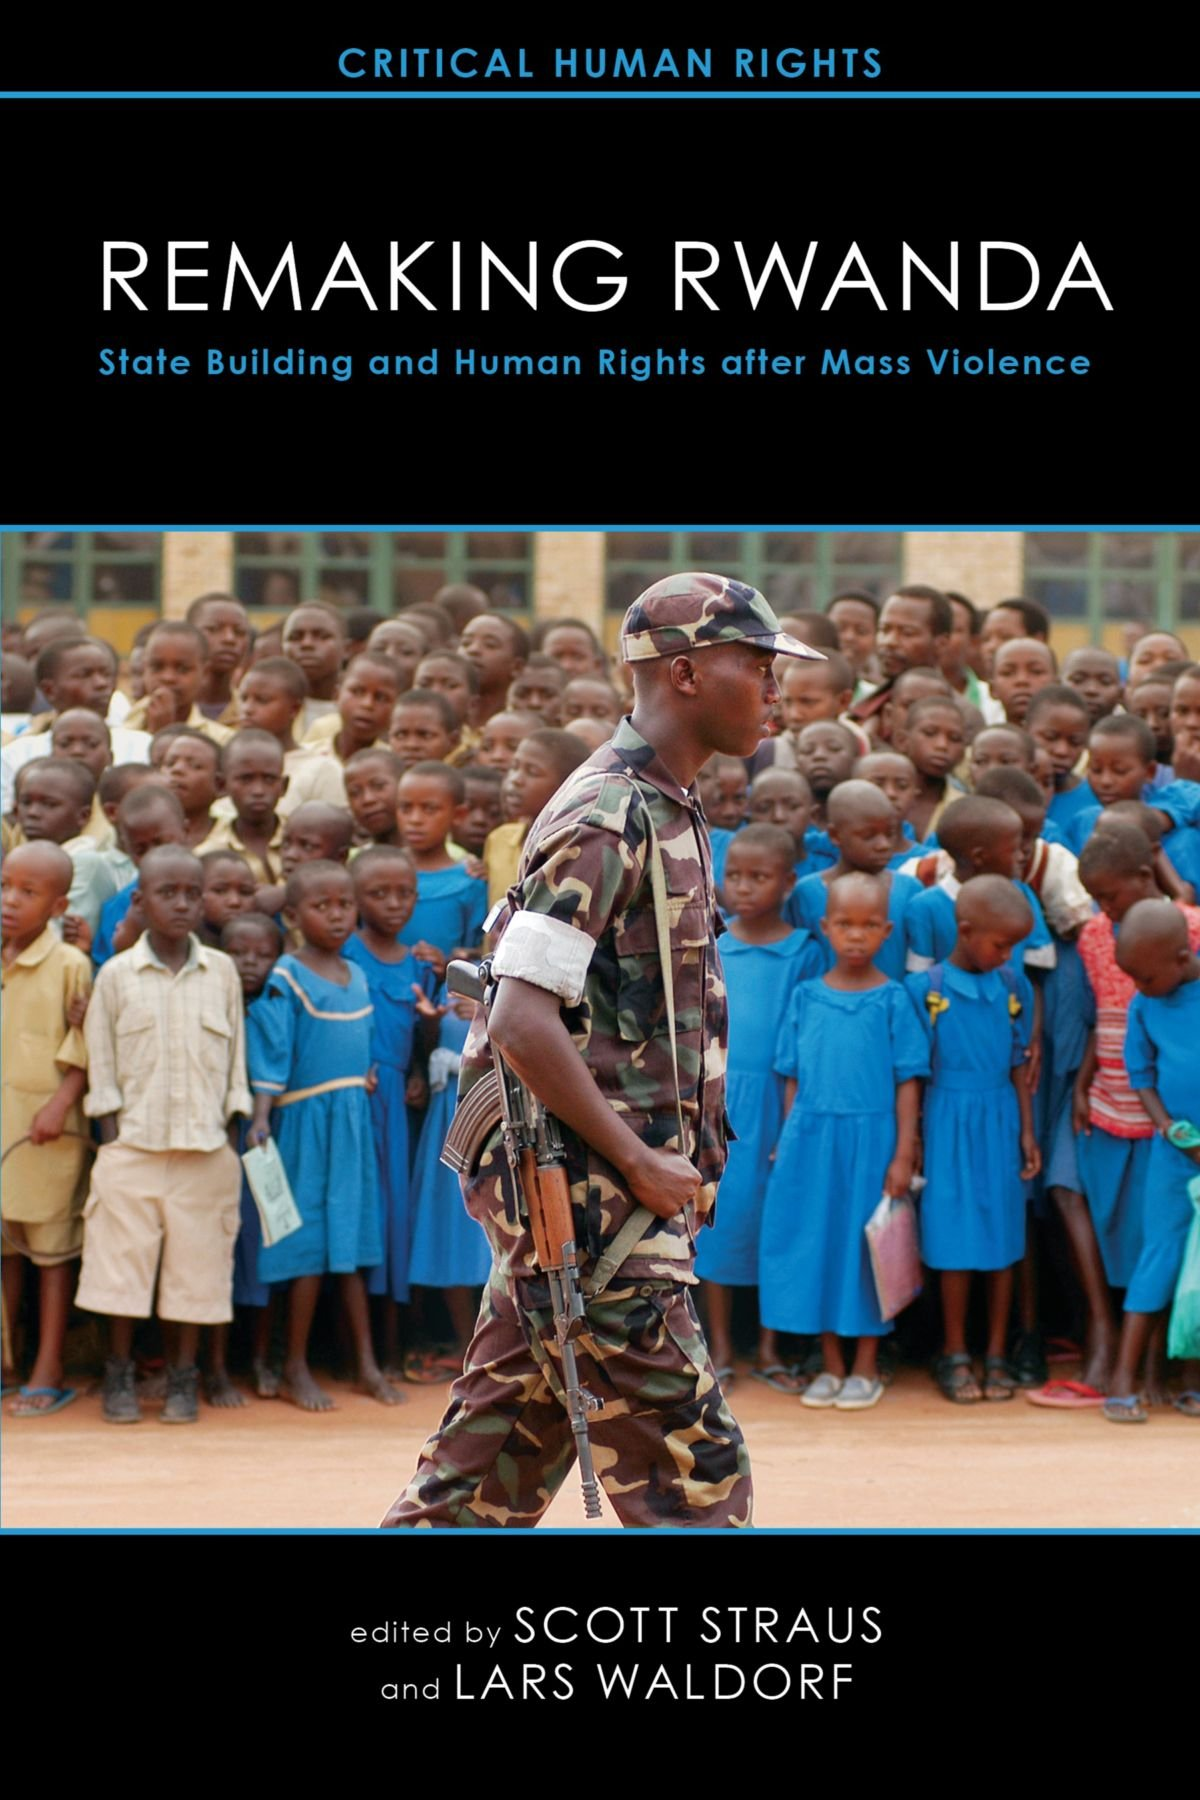 Remaking Rwanda: State Building and Human Rights after Mass Violence (Critical Human Rights)